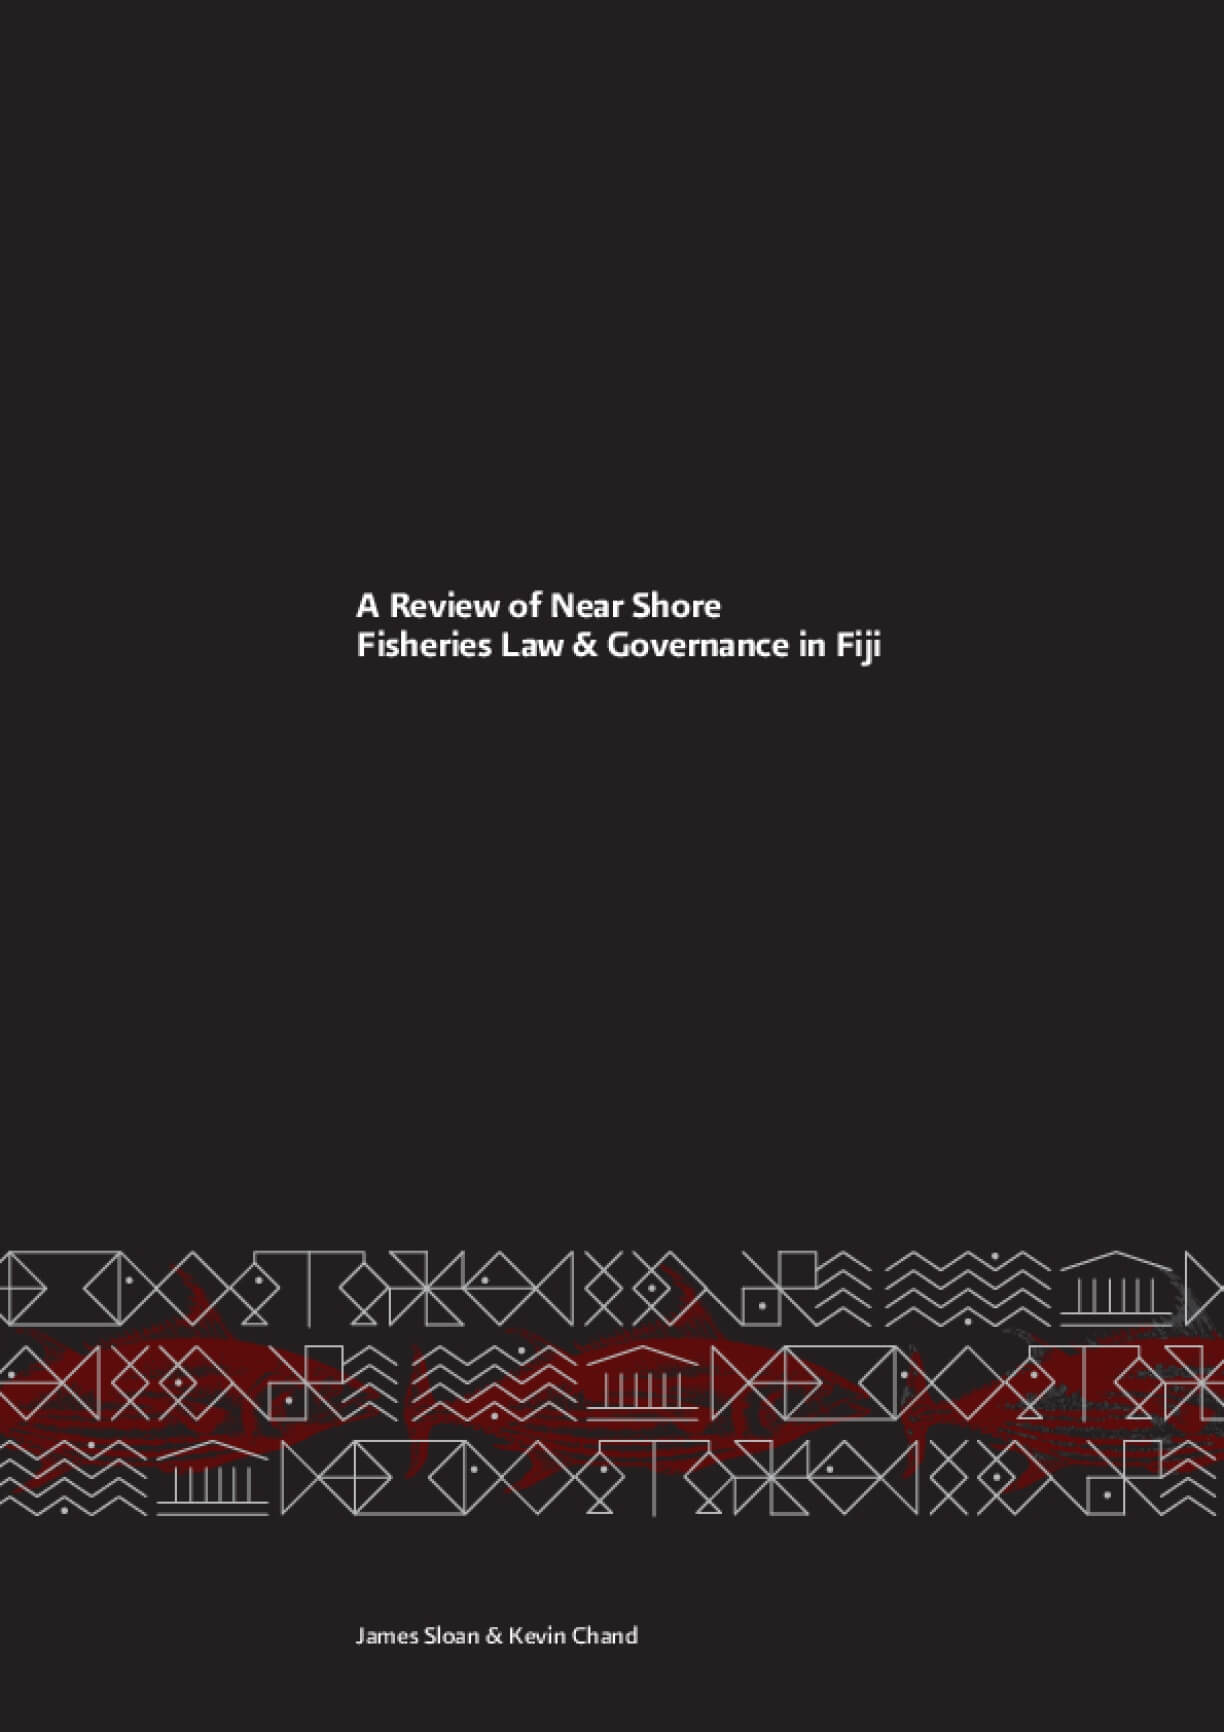 A Review of Near Shore Fisheries Law & Governance in Fiji